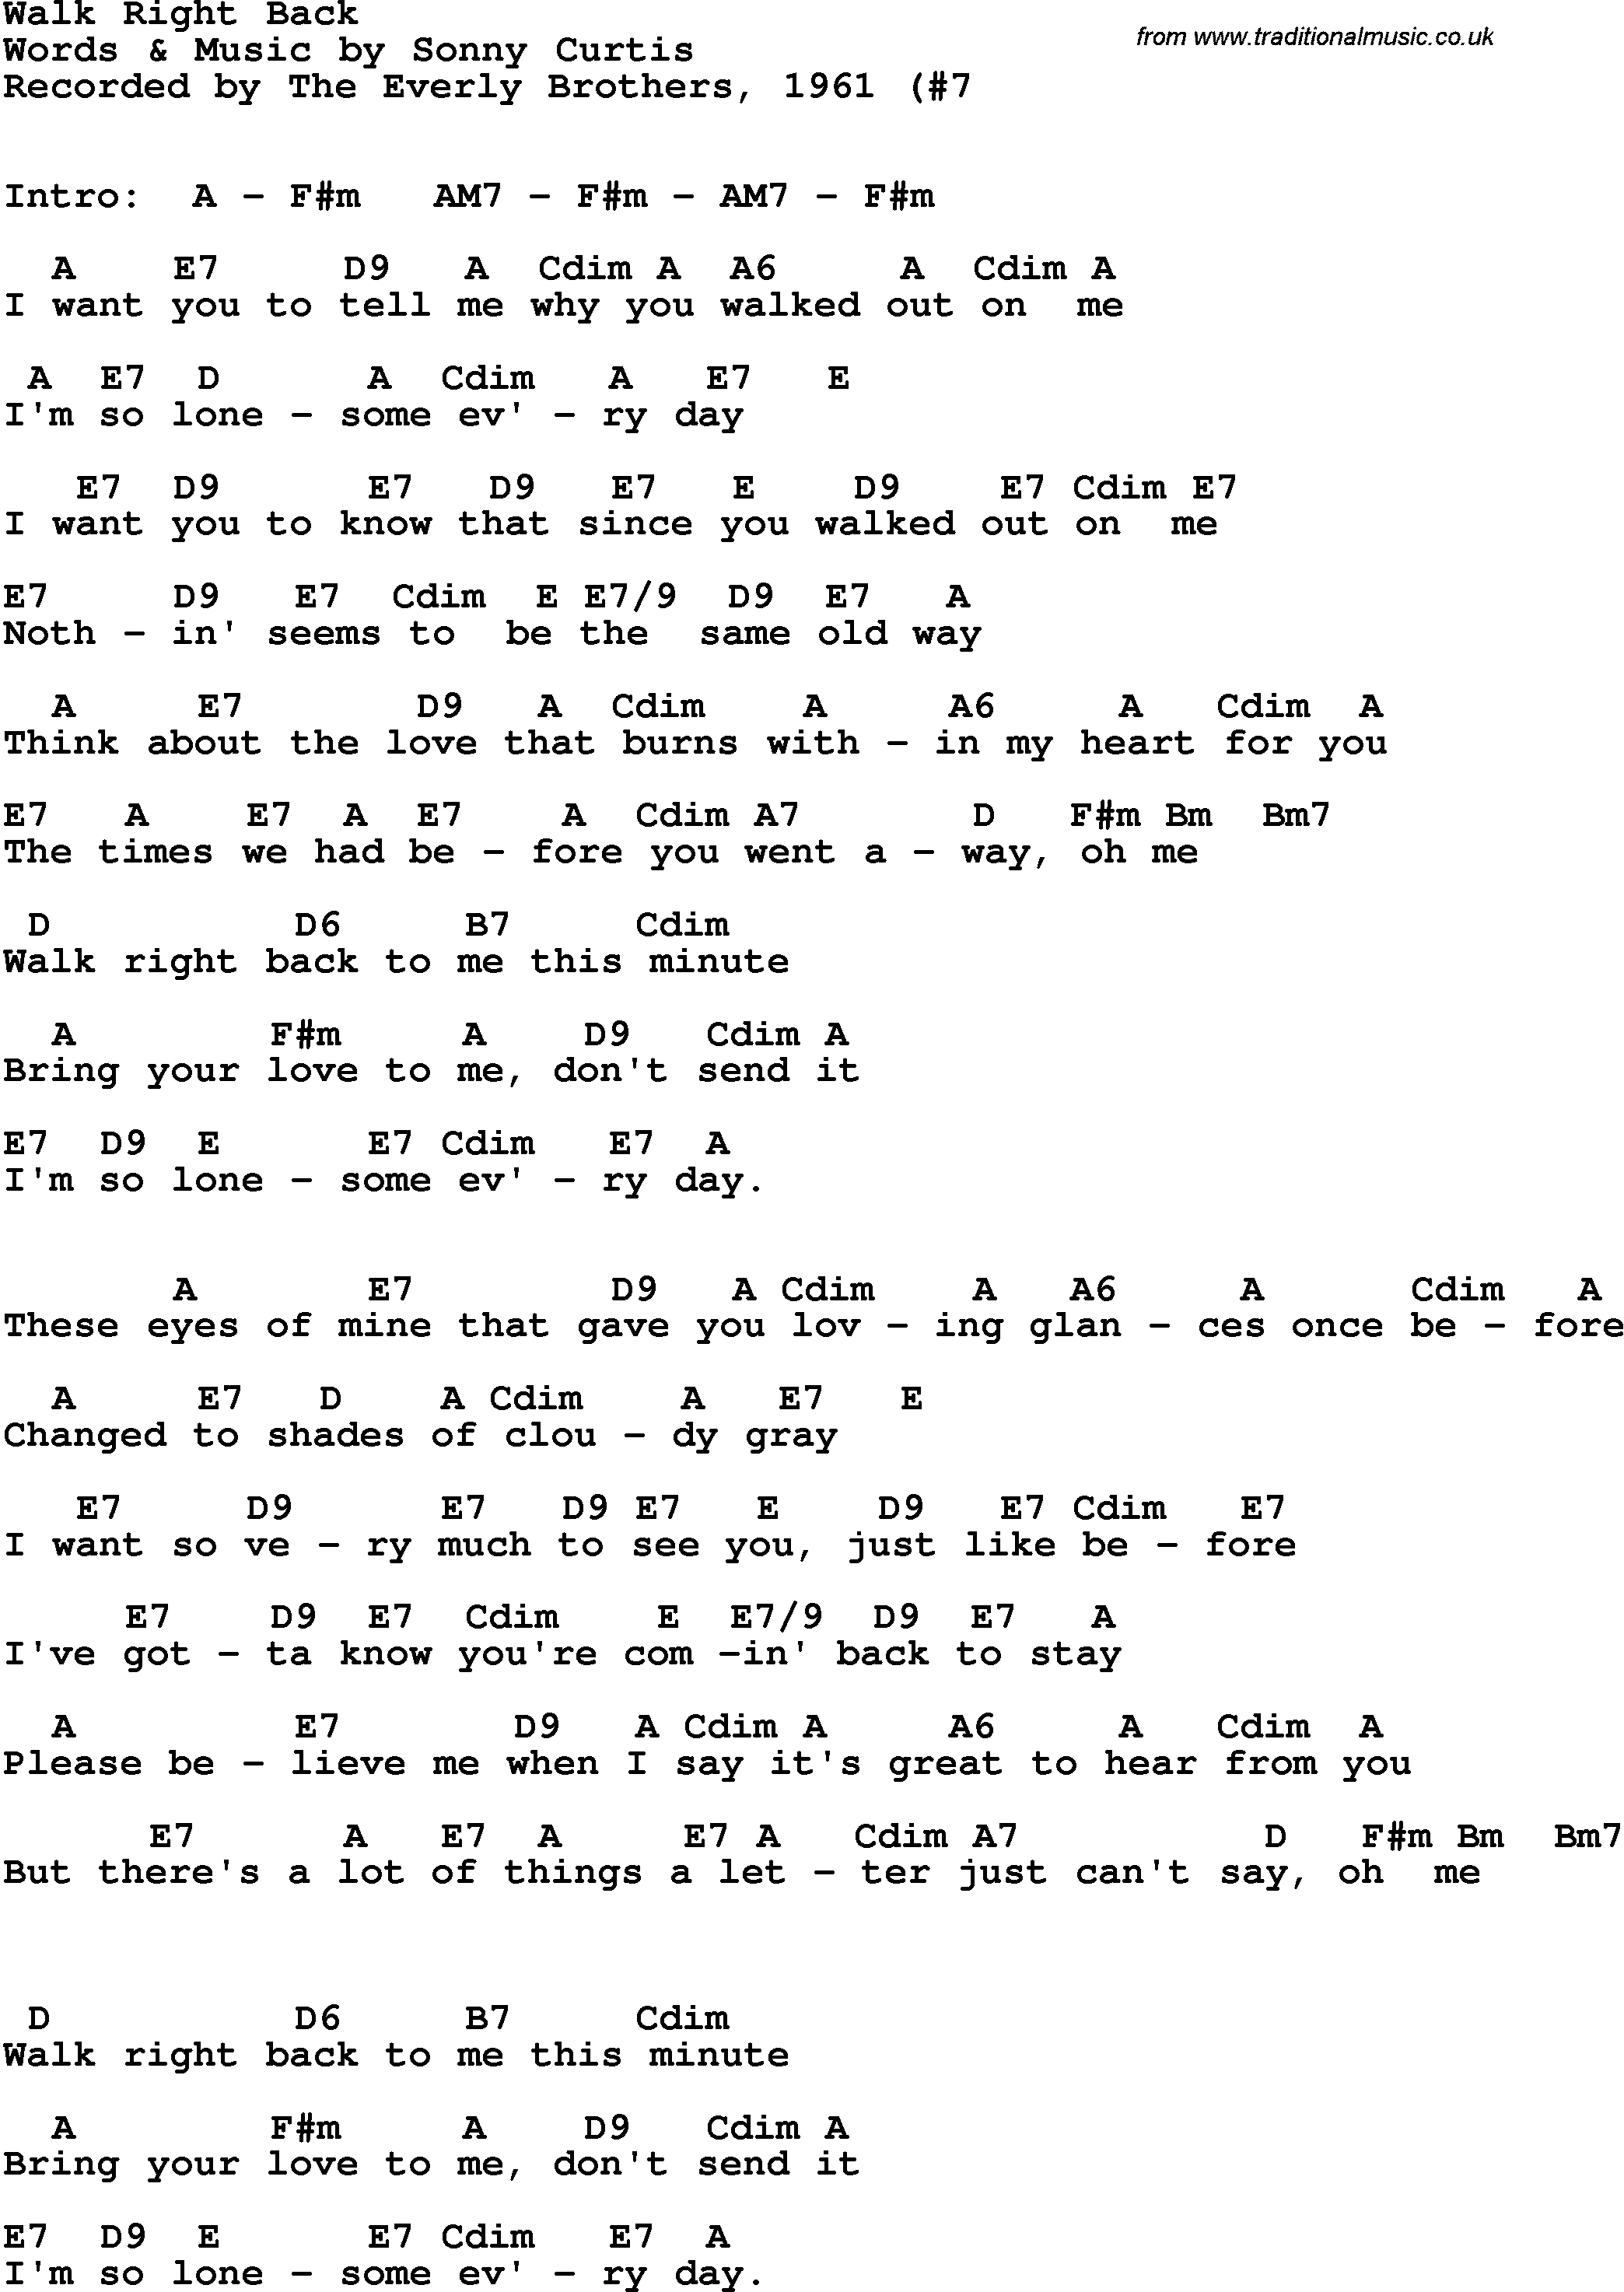 Song Lyrics With Guitar Chords For Walk Right Back The Everly